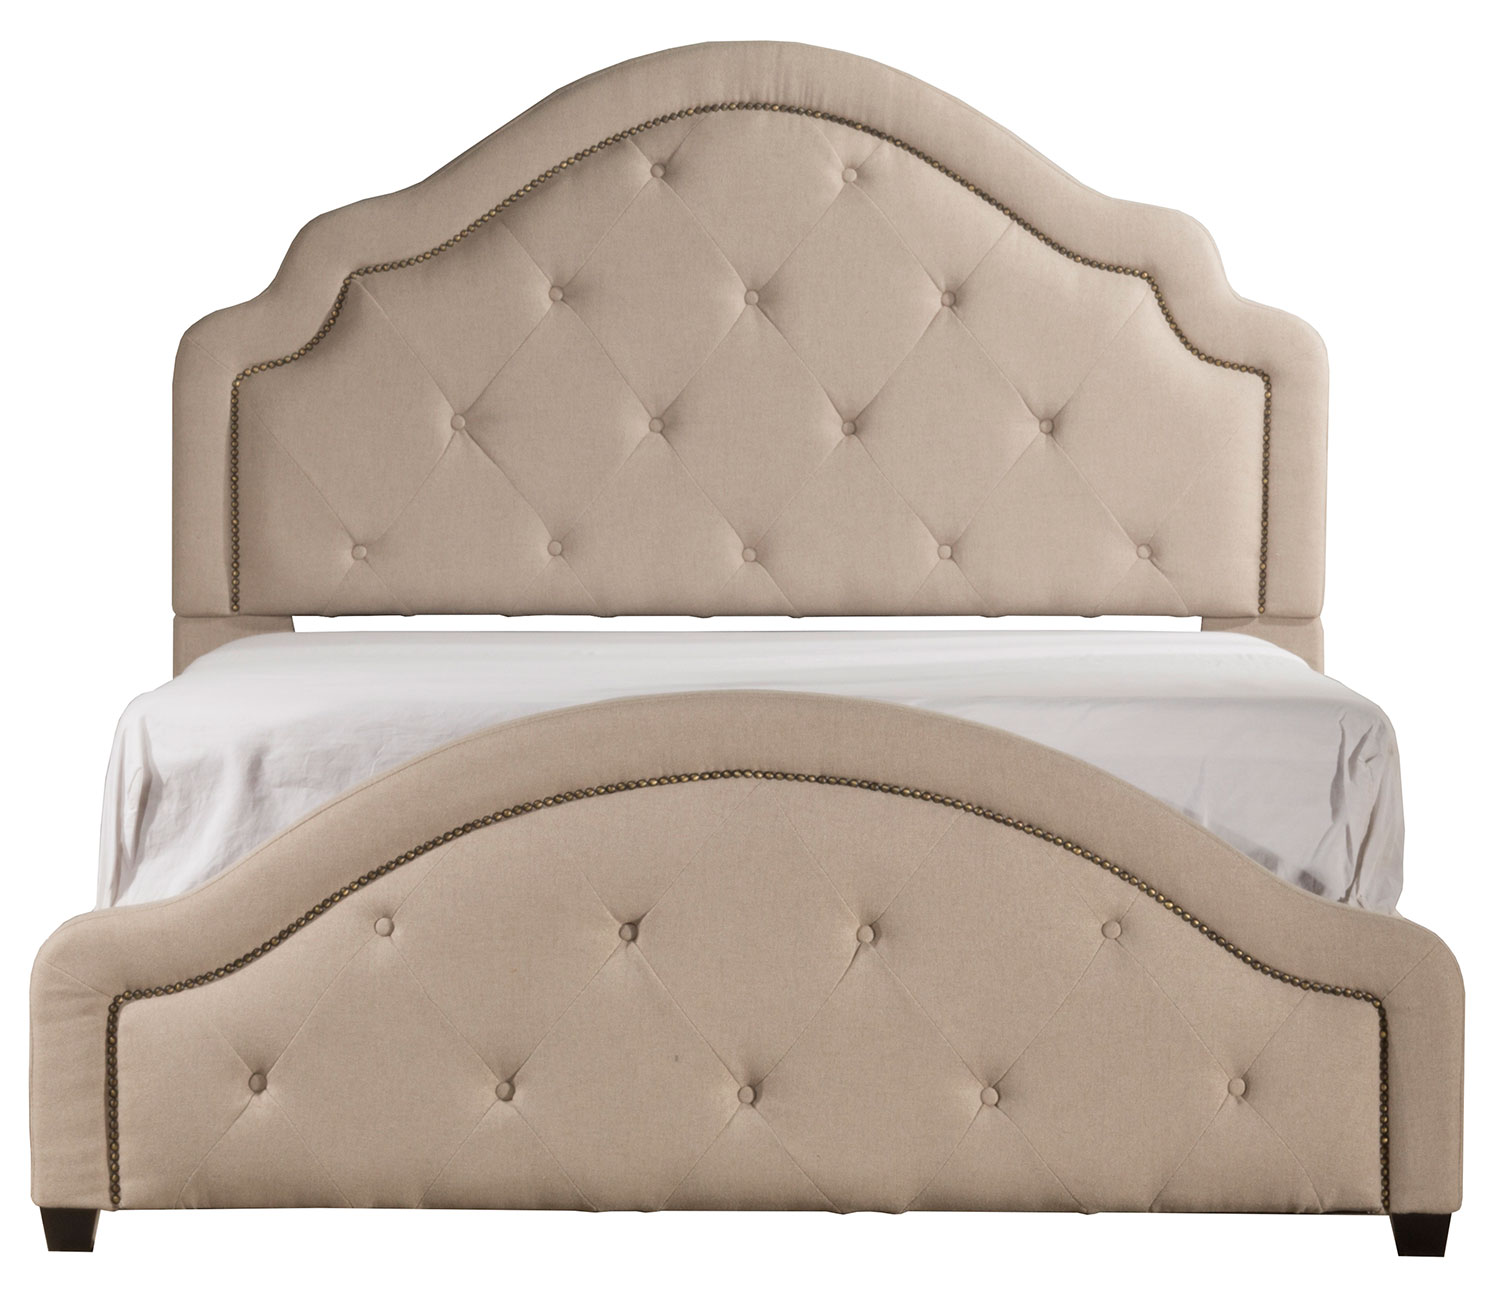 Hillsdale Belize Bed - Natural